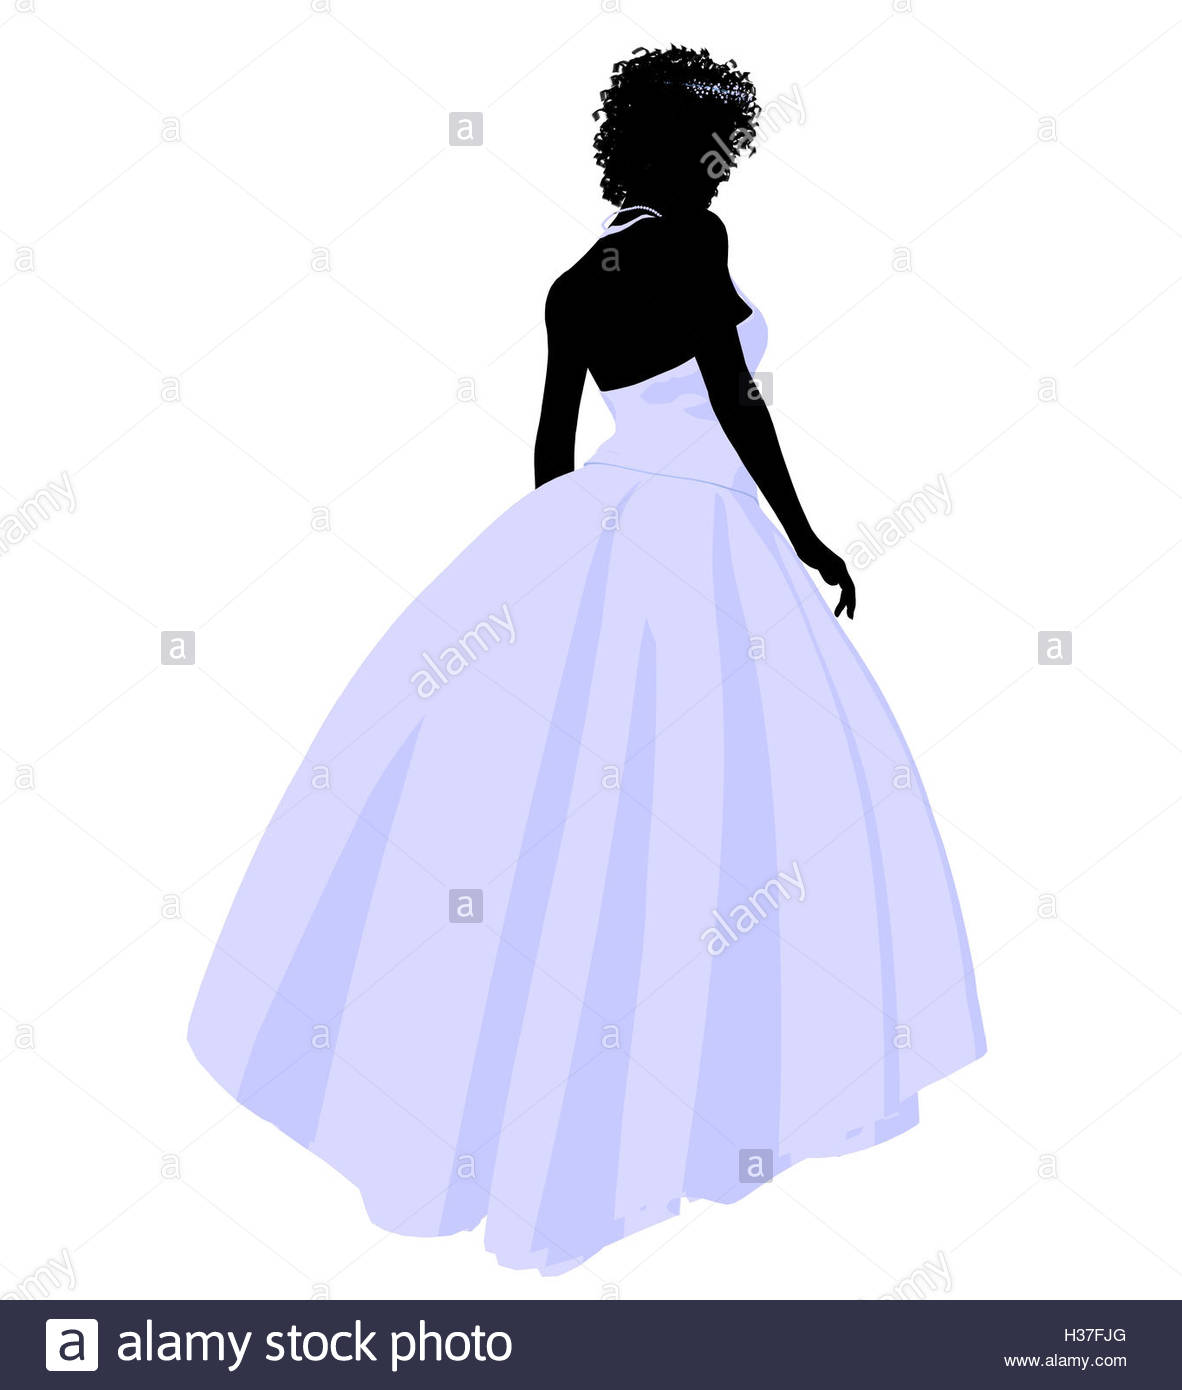 1182x1390 African American Wedding Bride Silhouette Stock Photo, Royalty